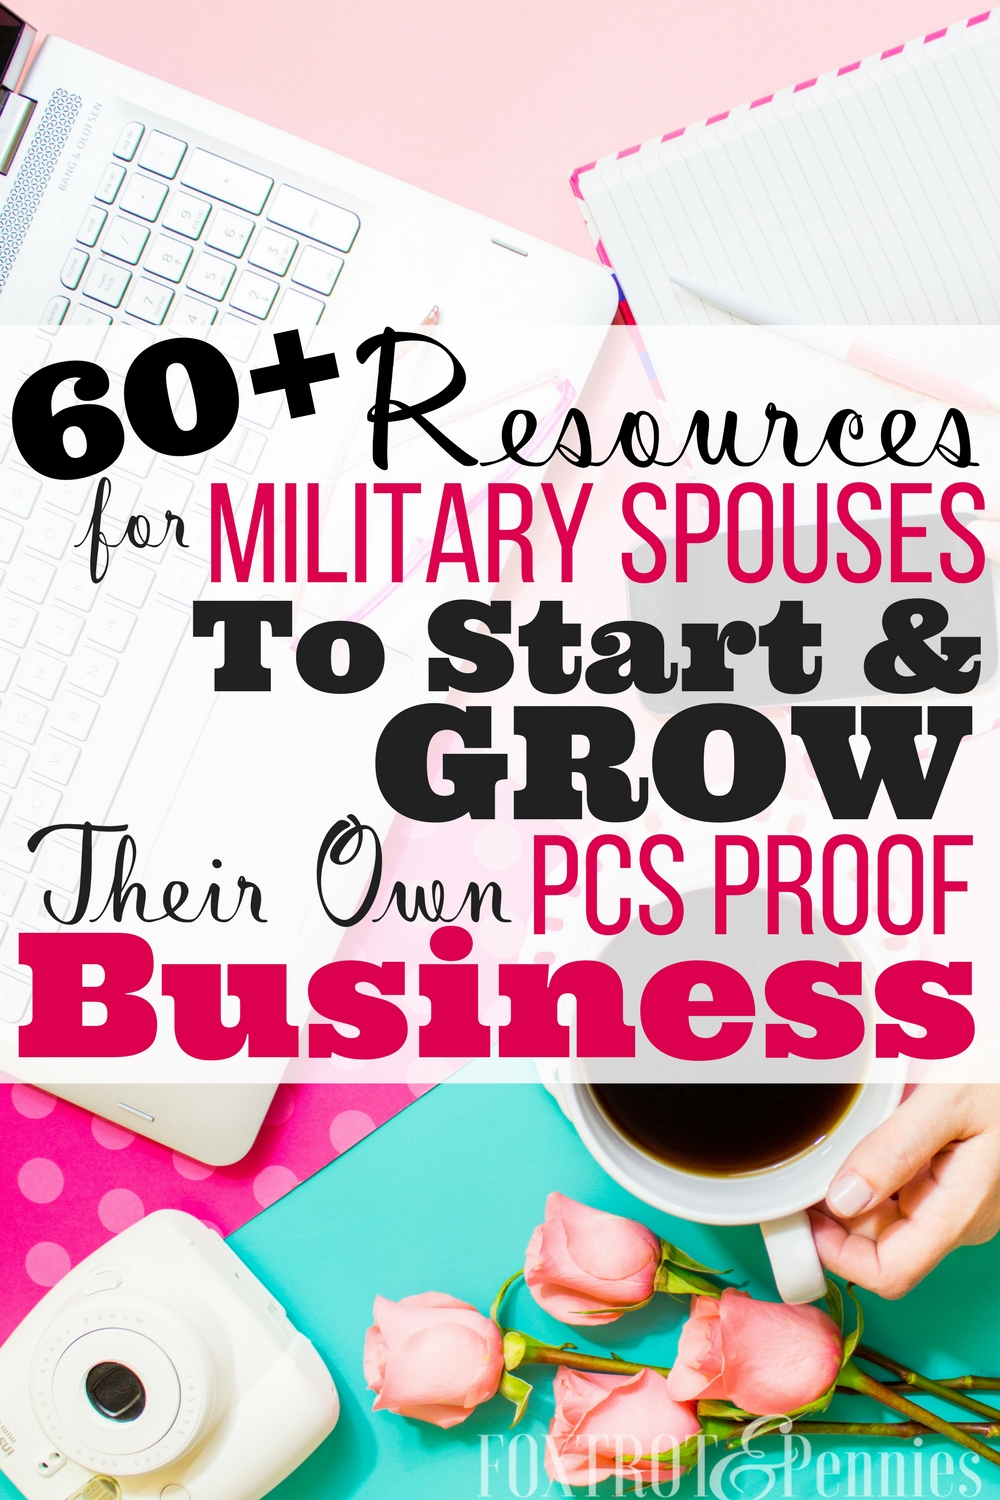 WOW so many great resources for starting and growing a PCS proof business for military spouses, this is great! I have learned so much already! Not only are there step by step guides and tutorials but there are also free printables and courses specifically geared towards military spouse. This is not the typical resource list for building a business! LOVE it!